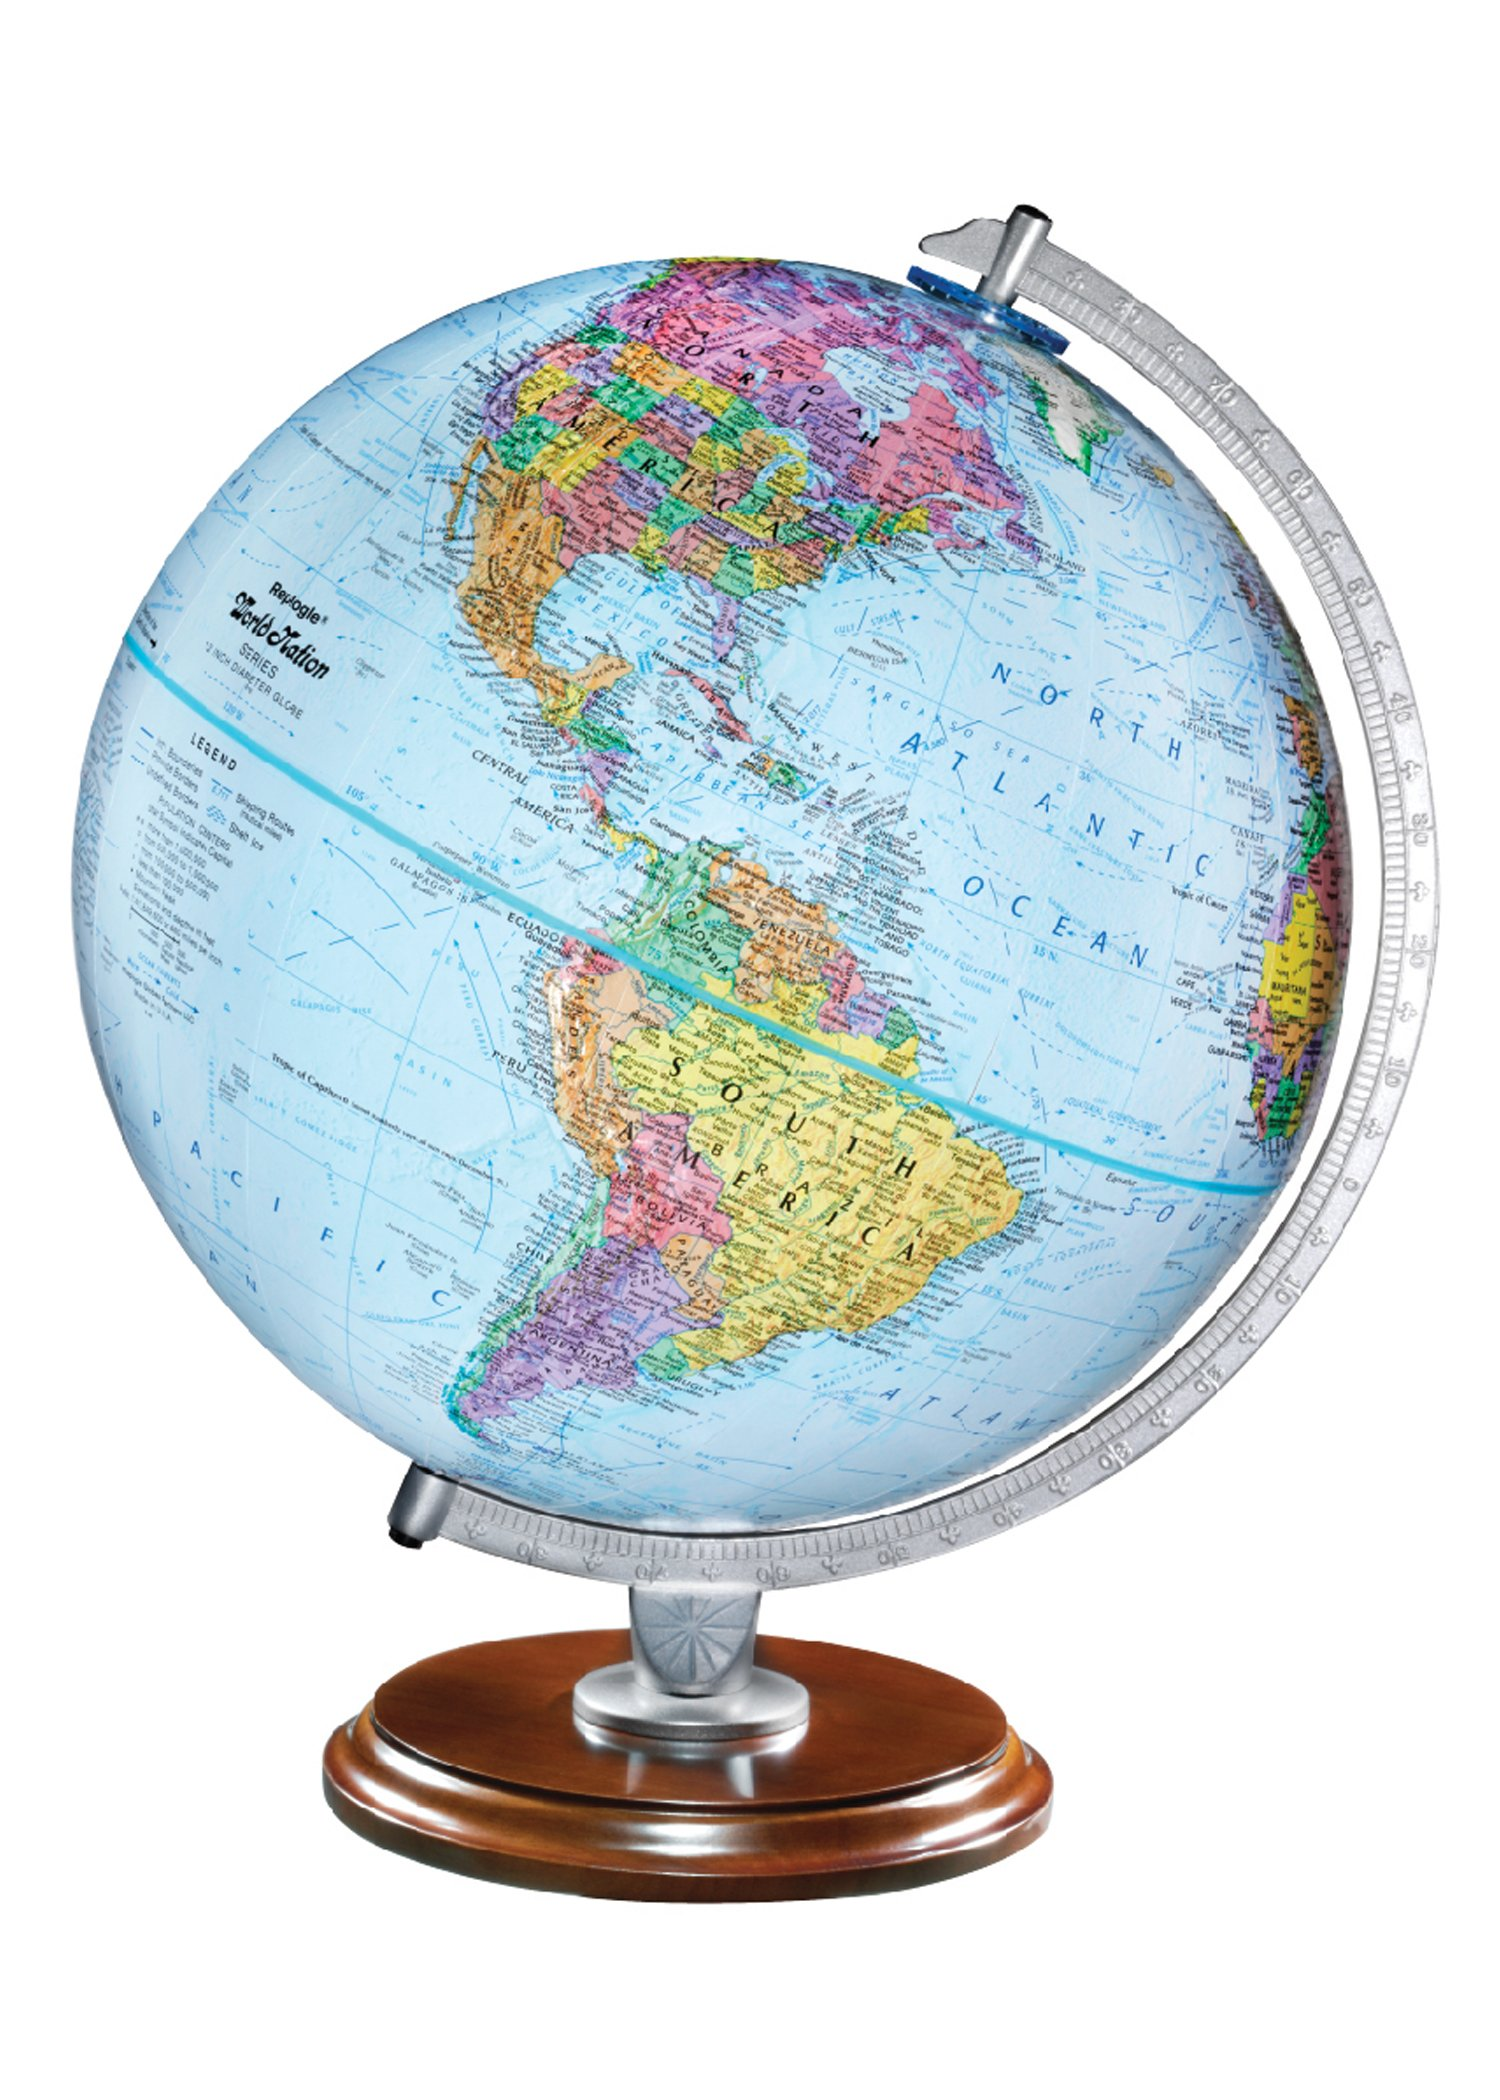 Replogle Standard - Educational Desktop World Globe for Kids and Teachers, Antique Walnut Wood Stand, Over 4,000 Place Names, Designed for Classroom Learning (12''/30 cm diameter)